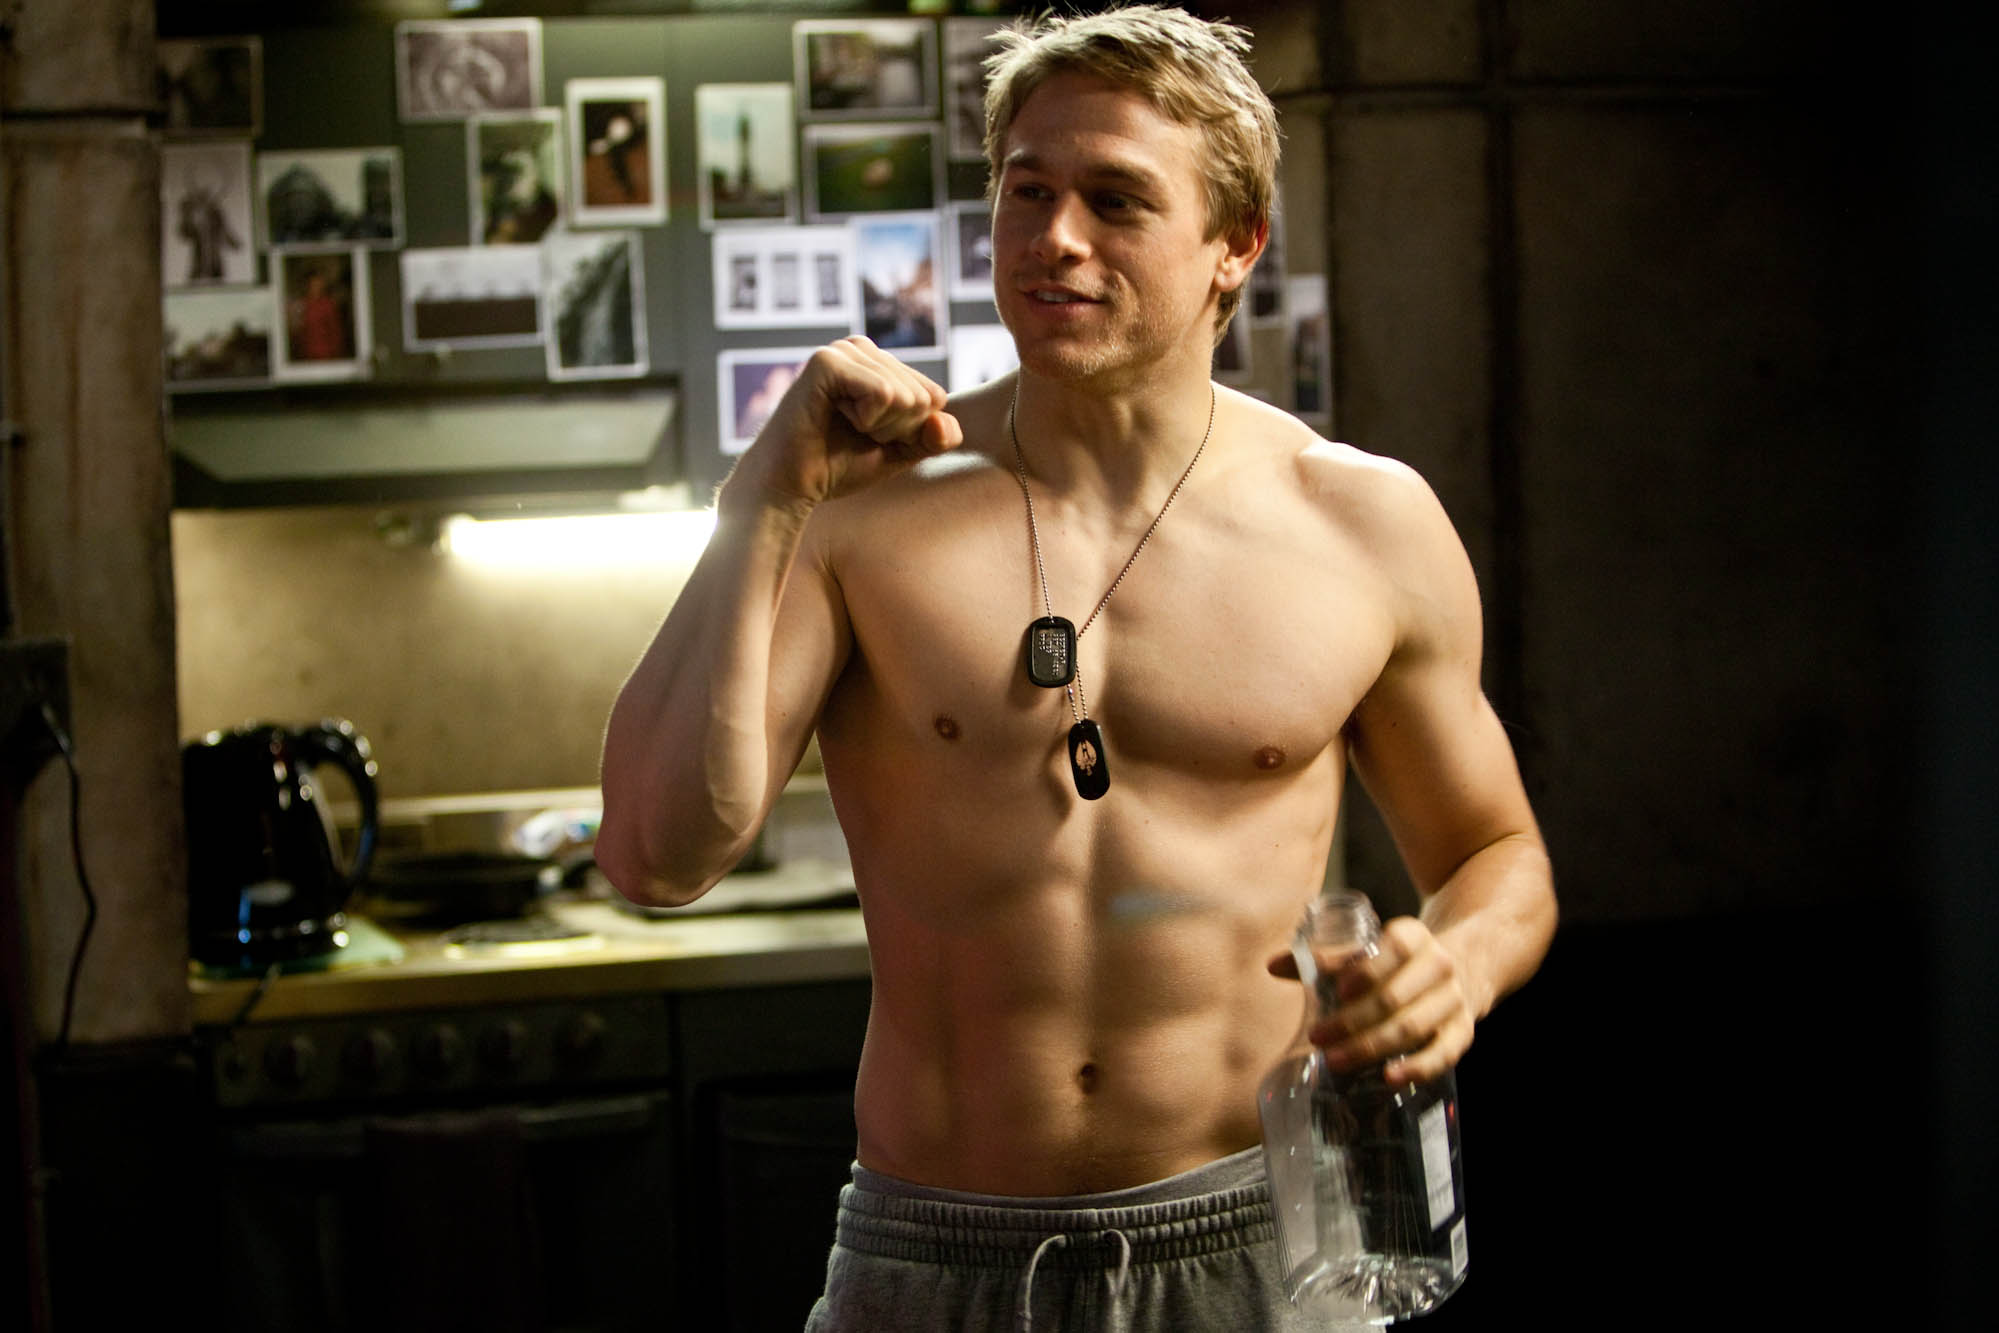 Charlie Hunnam Shirtless HD Wallpaper HD Wallpaper For desktop 1999x1333